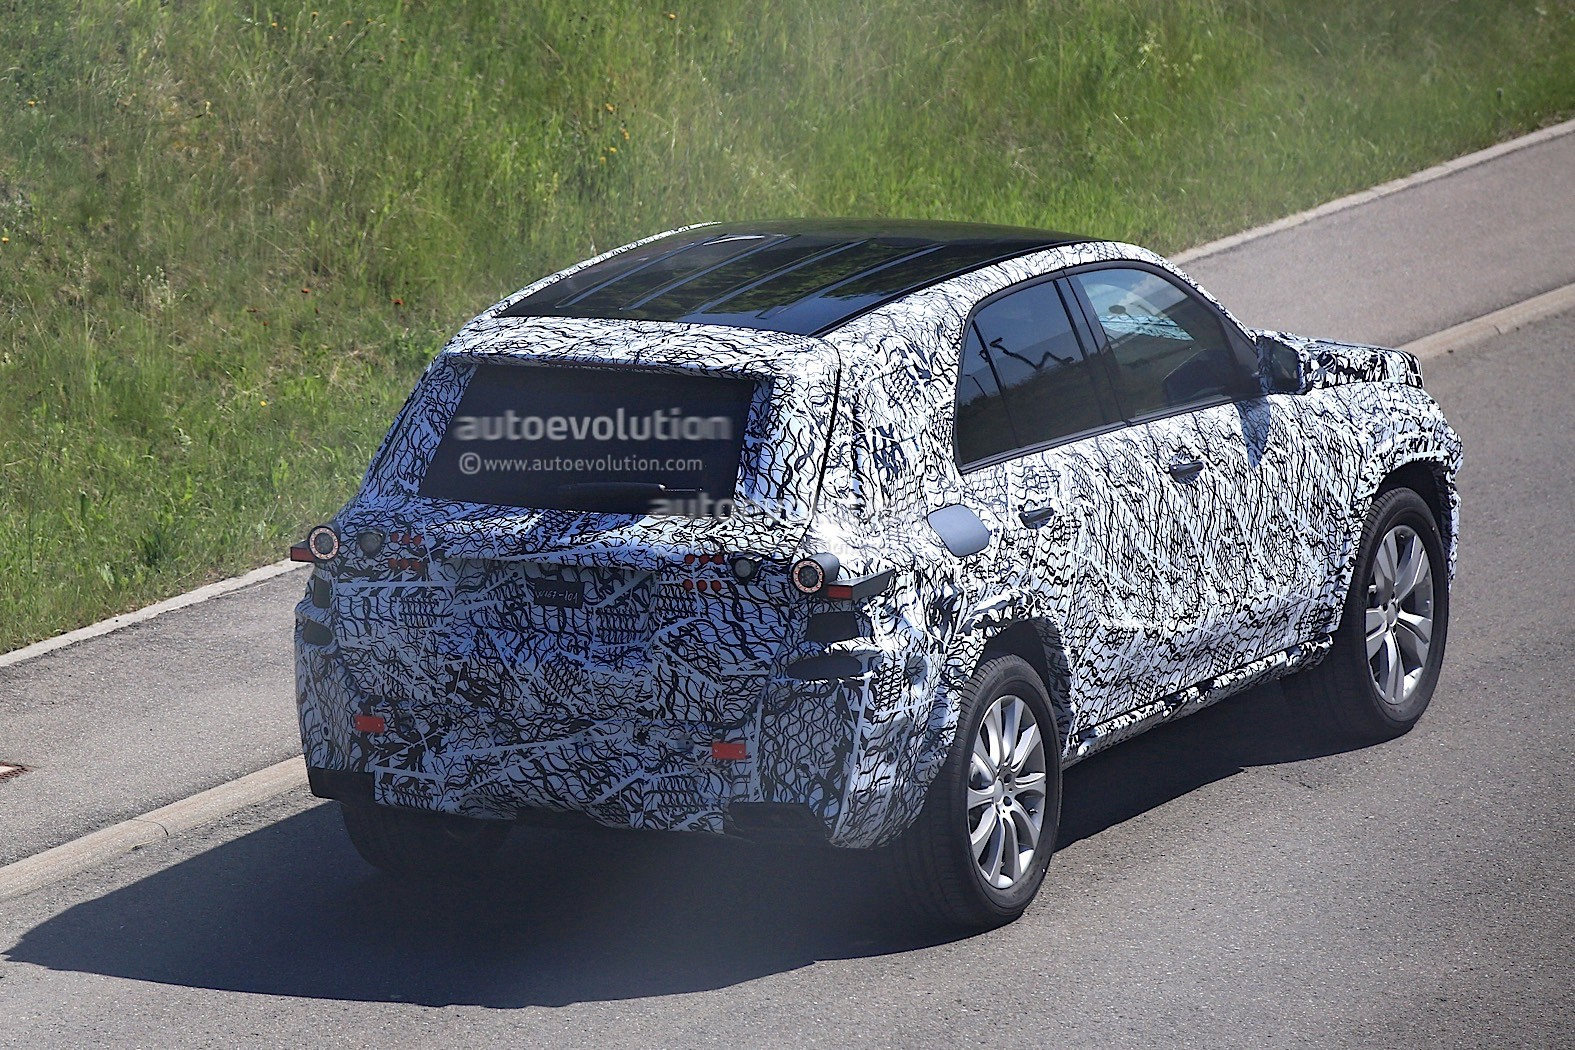 2018-mercedes-benz-glb-starts-testing-with-production-body_11-autonovosti.me-3